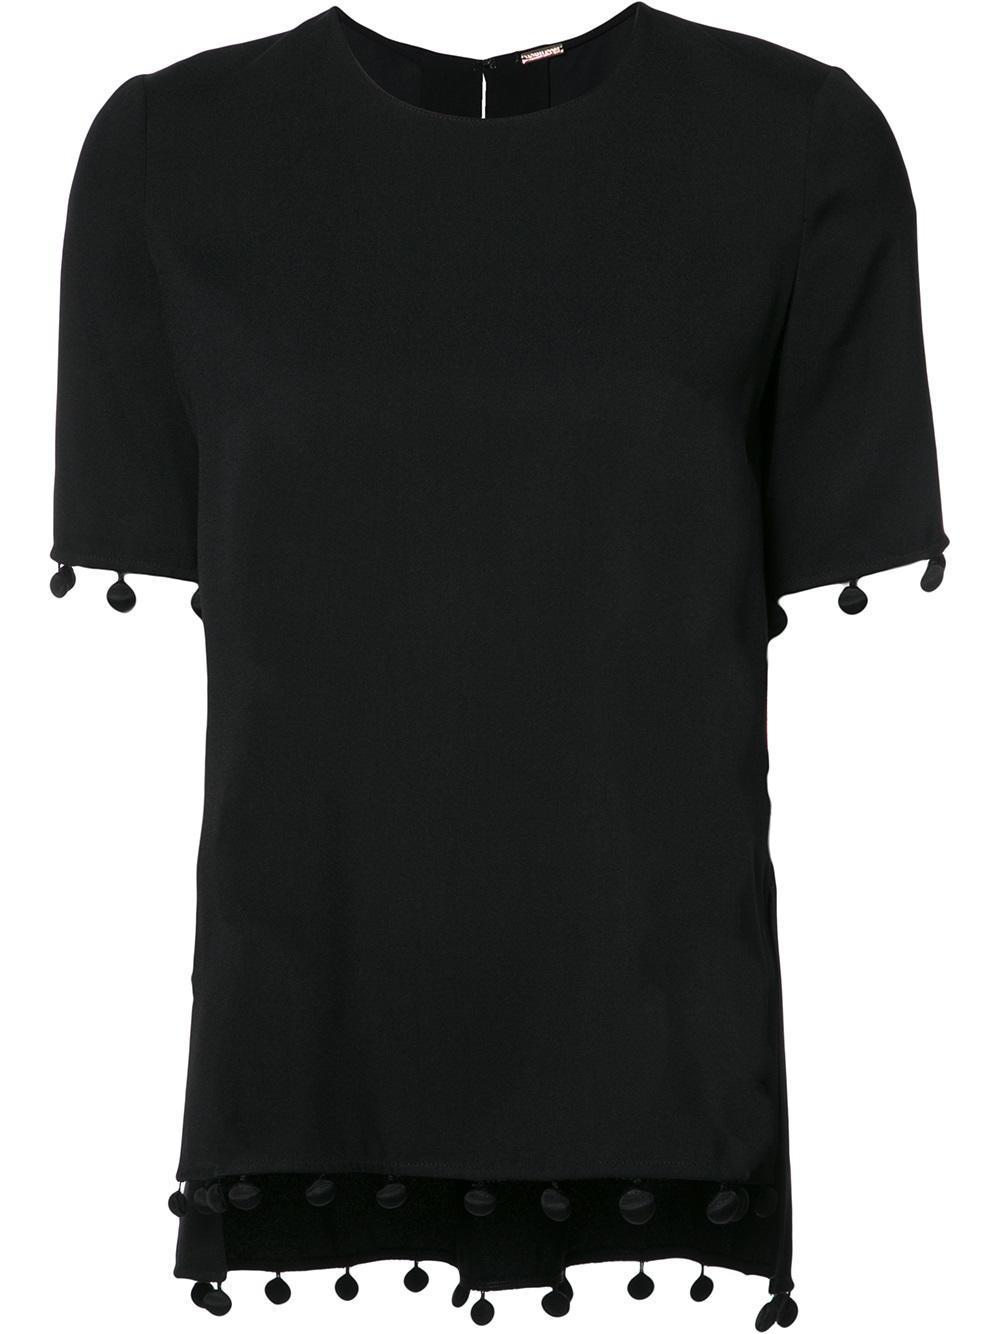 Lyst adam lippes fringed detail t shirt in black for Adam lippes t shirt